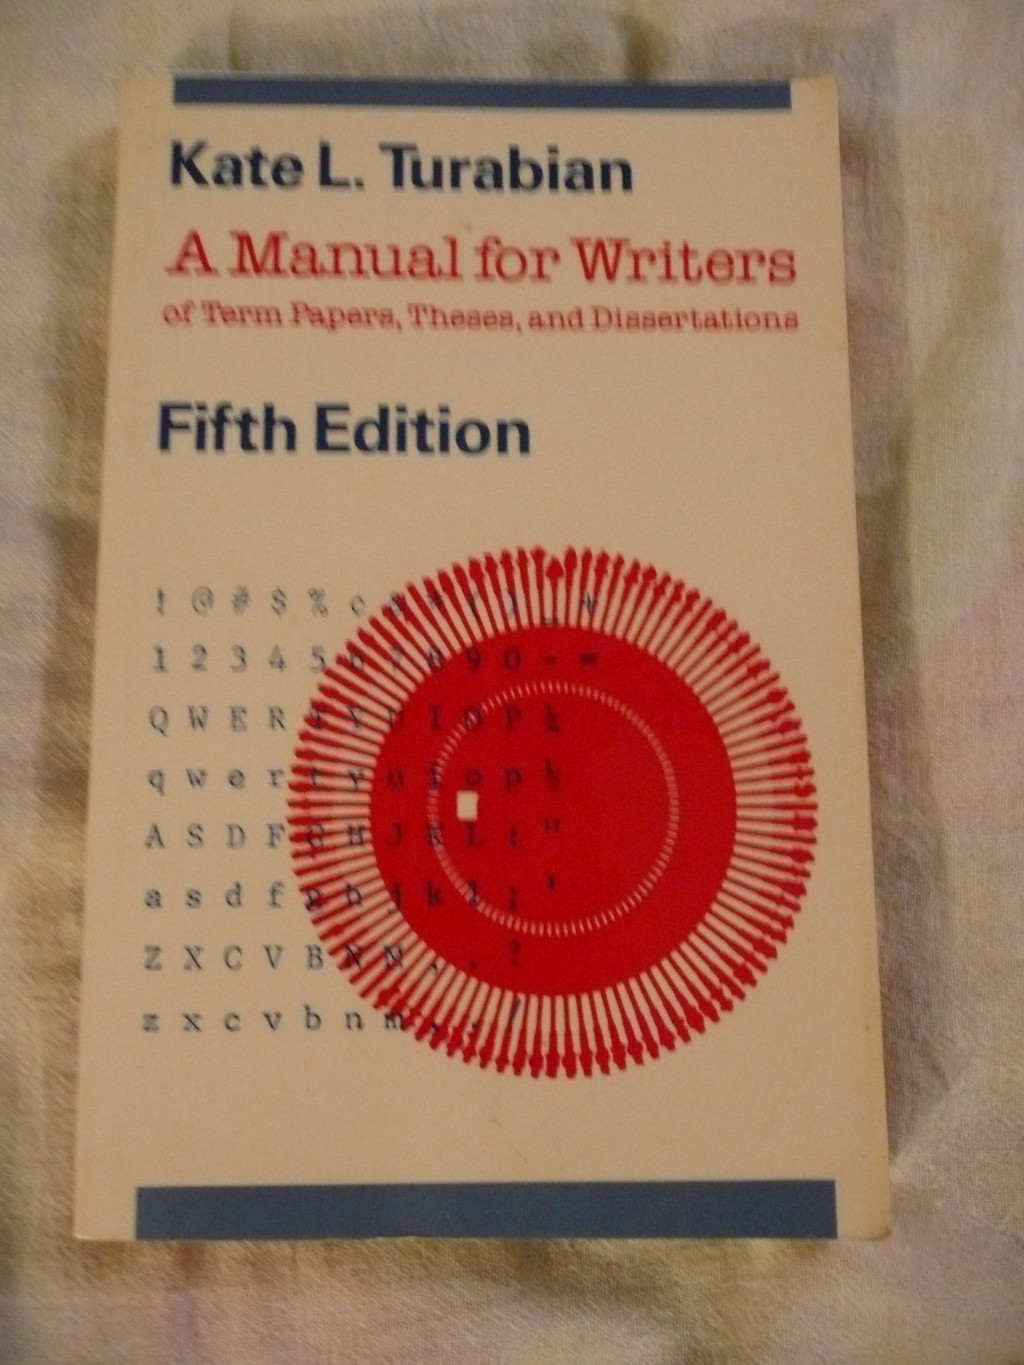 014 Research Paper Manual For Writers Of Papers Theses And Dissertations Magnificent 8th 13 A 9th Edition Apa Large